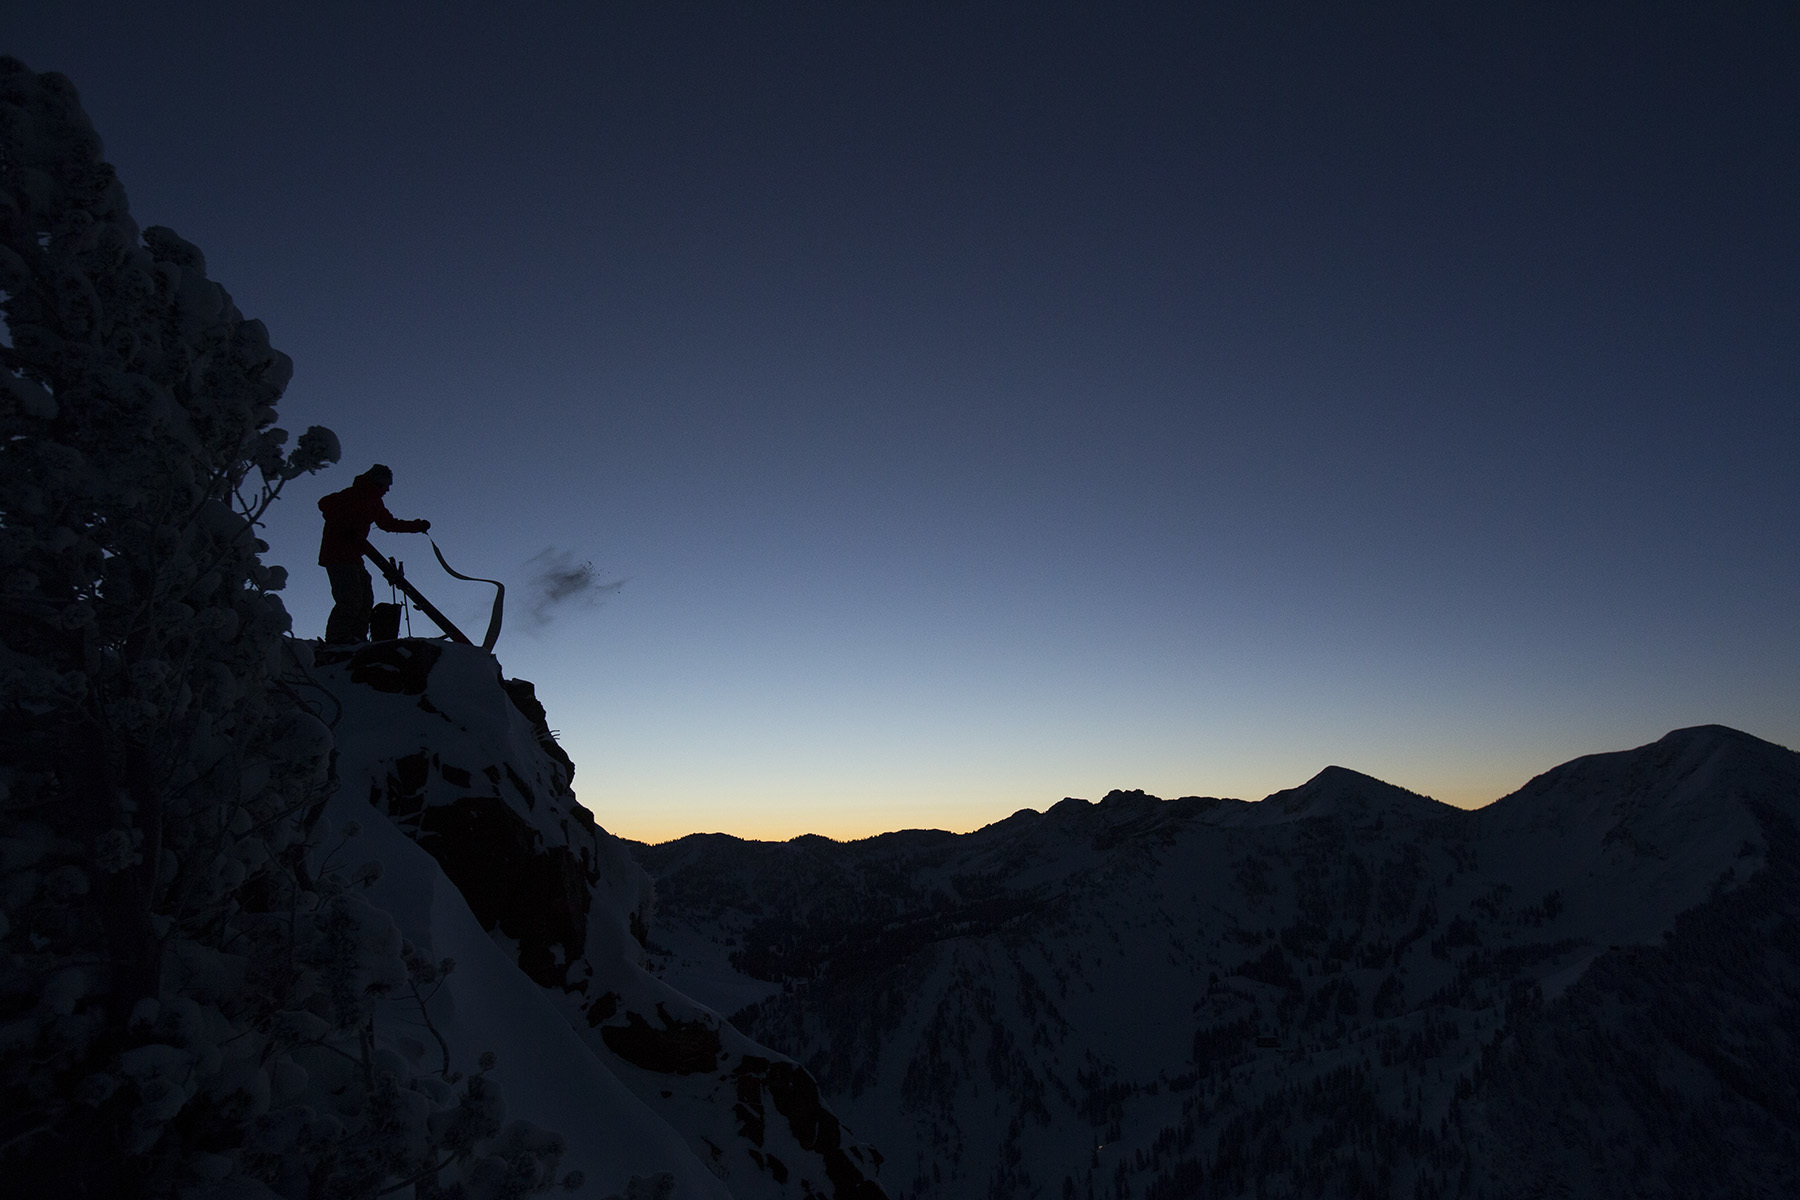 Sage Cattabriga-Alosa, Wasatch Backcountry, Utah